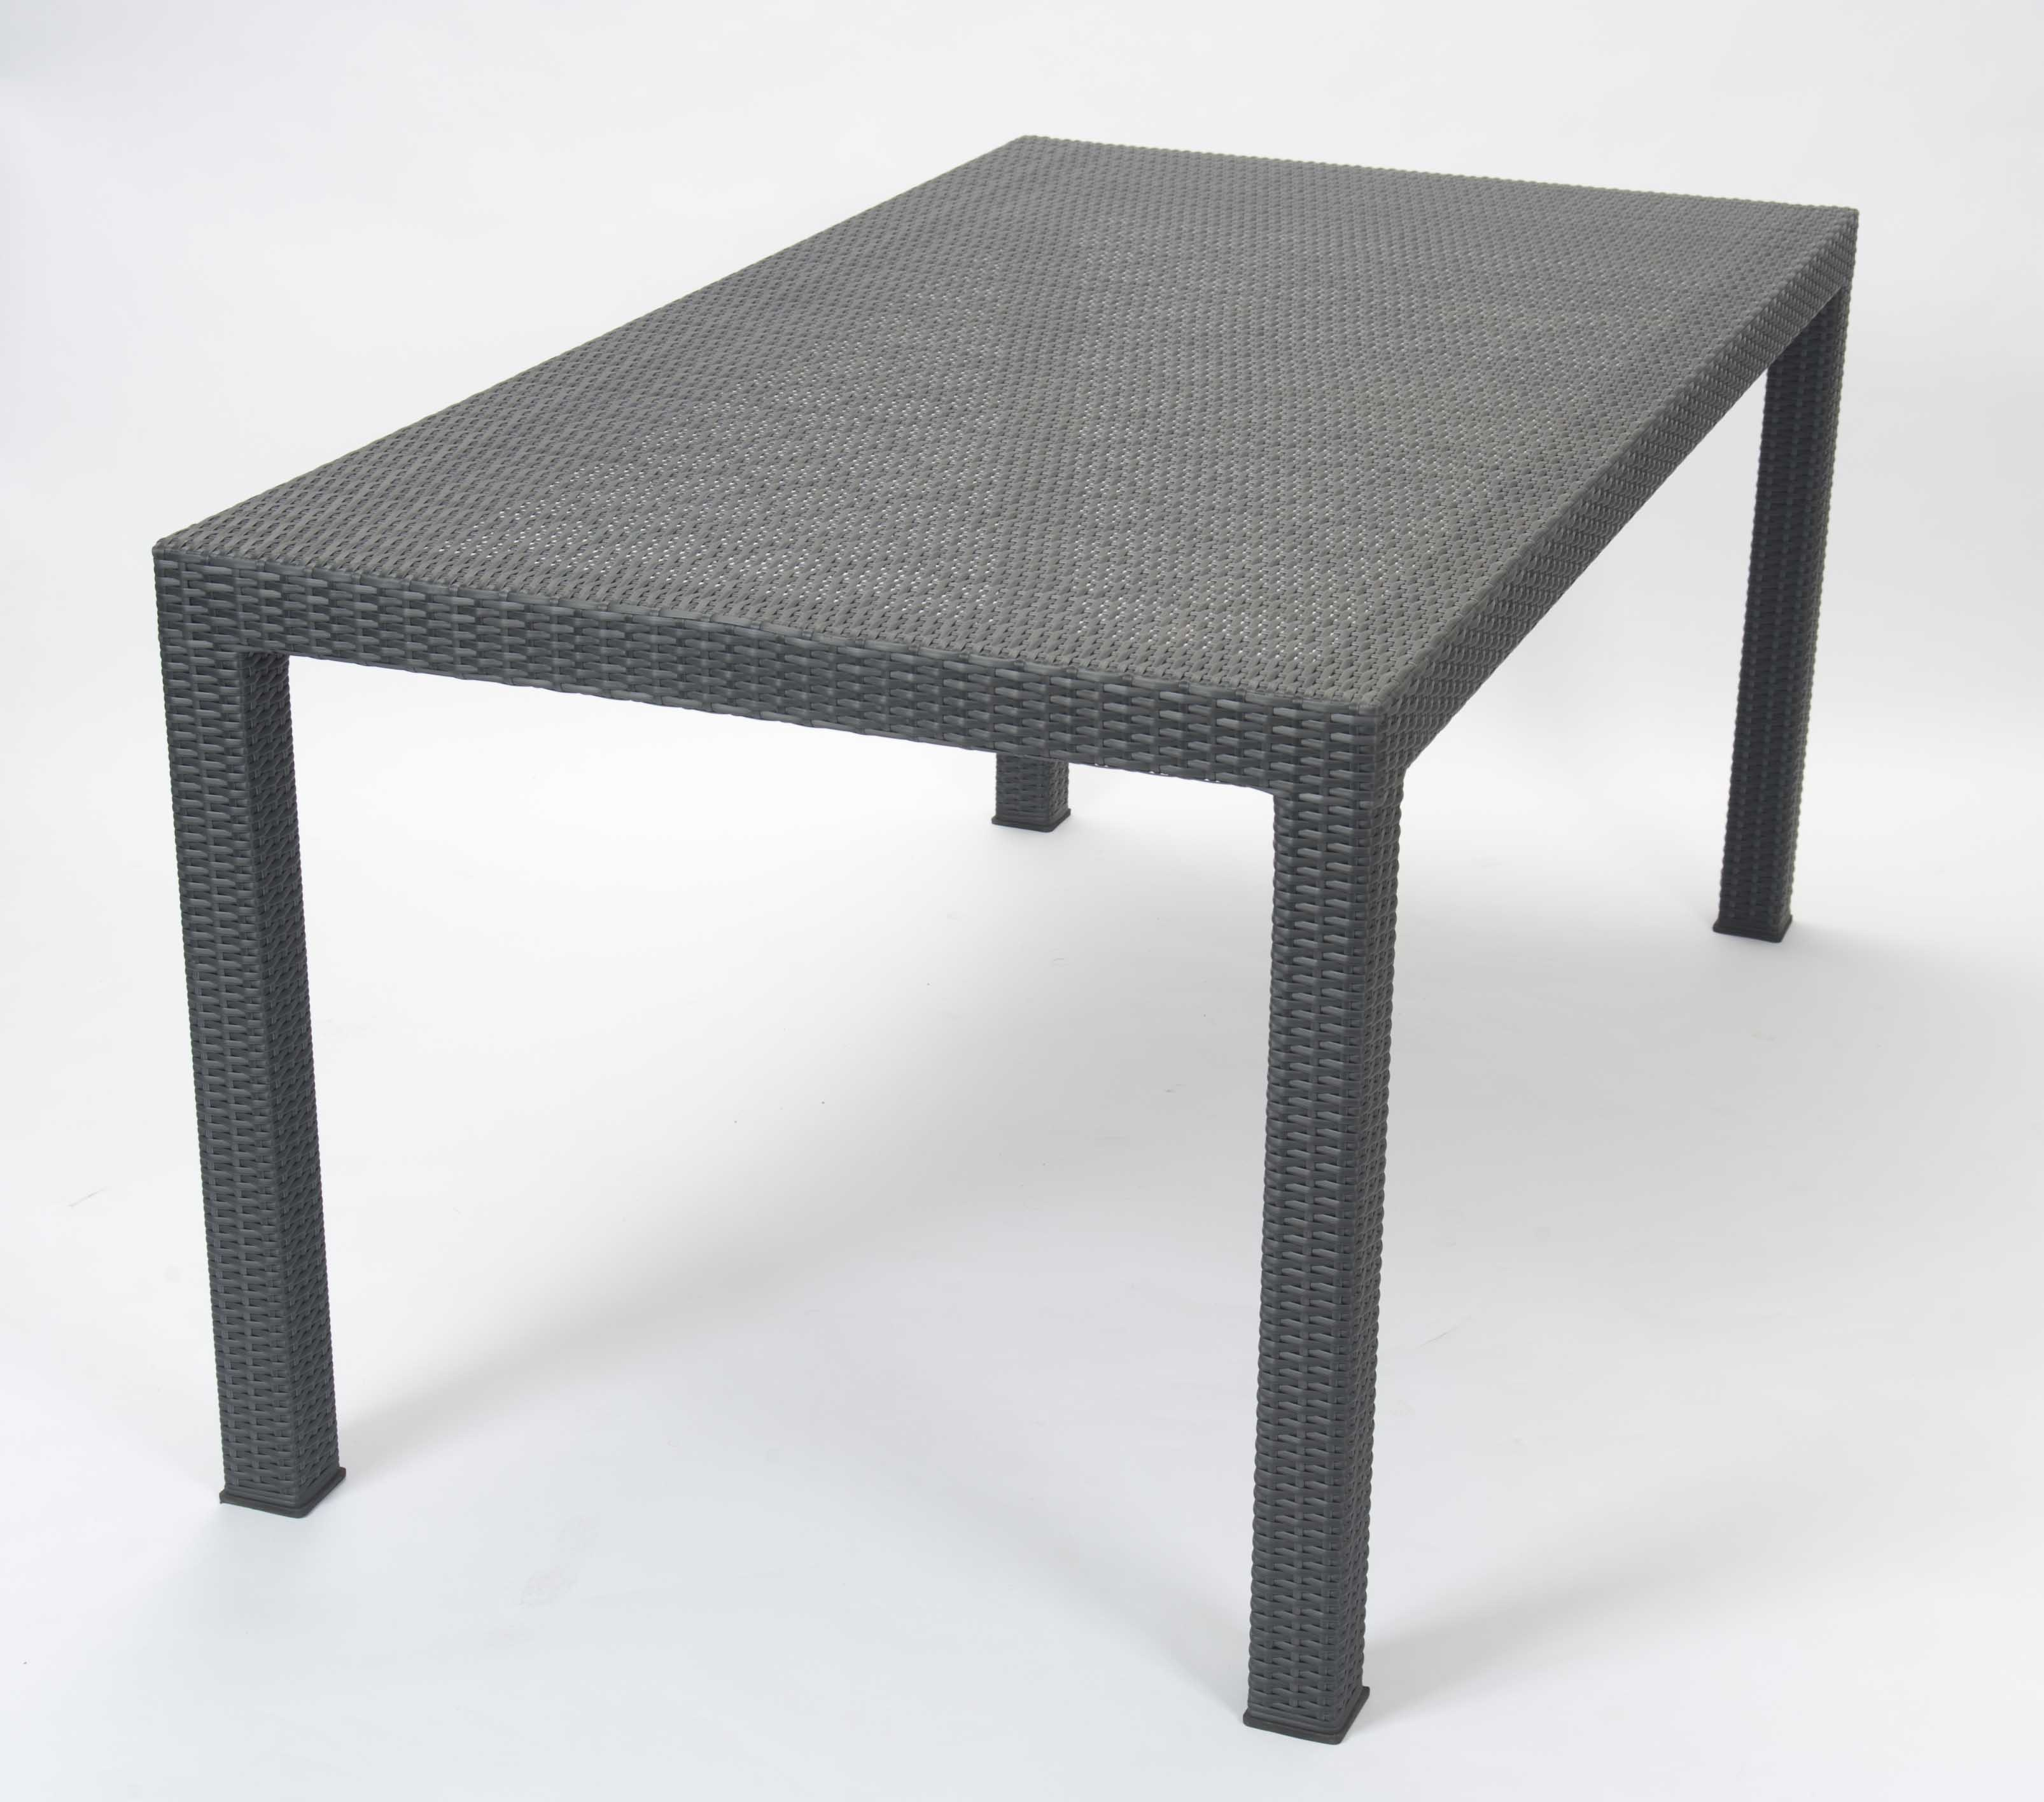 Nimes Outdoor Dining Table Slate pr home : nimestable slate4 from www.prhome.co.uk size 3212 x 2832 jpeg 367kB